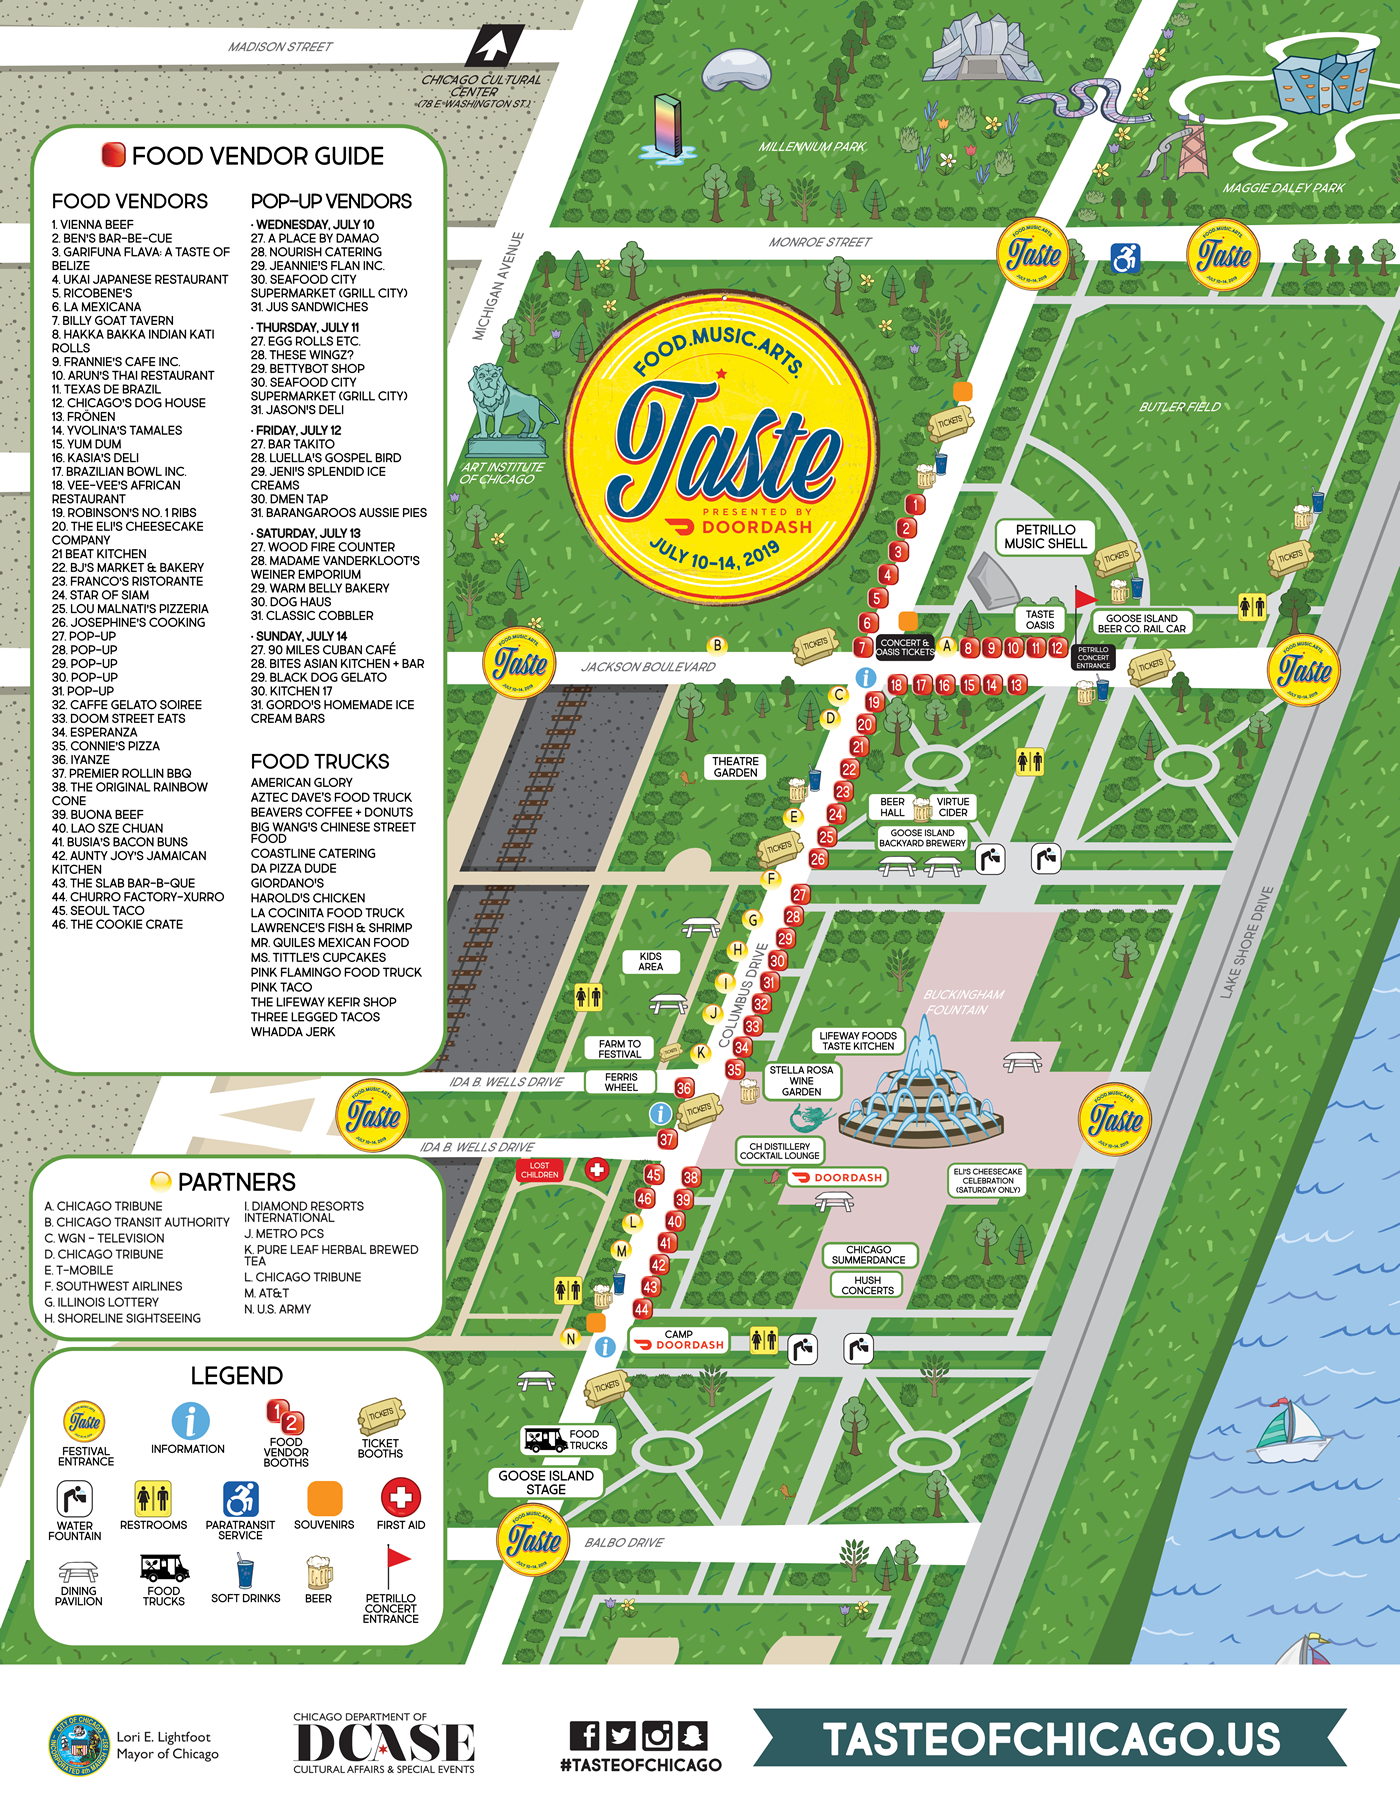 City of Chicago :: Taste of Chicago Map